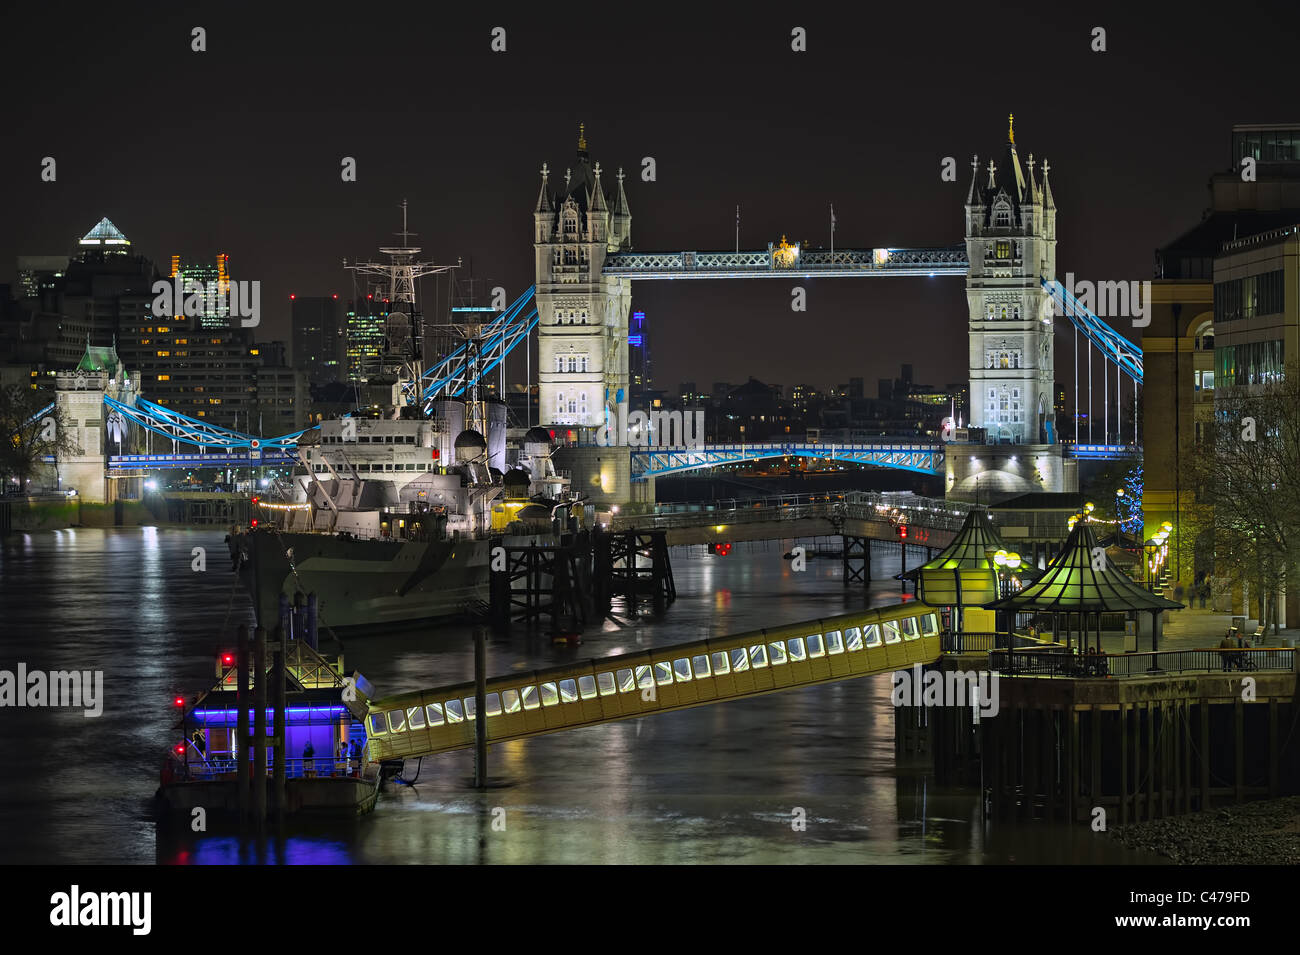 Upper Pool of London, River Thames, England, UK, Europe, at night - Stock Image